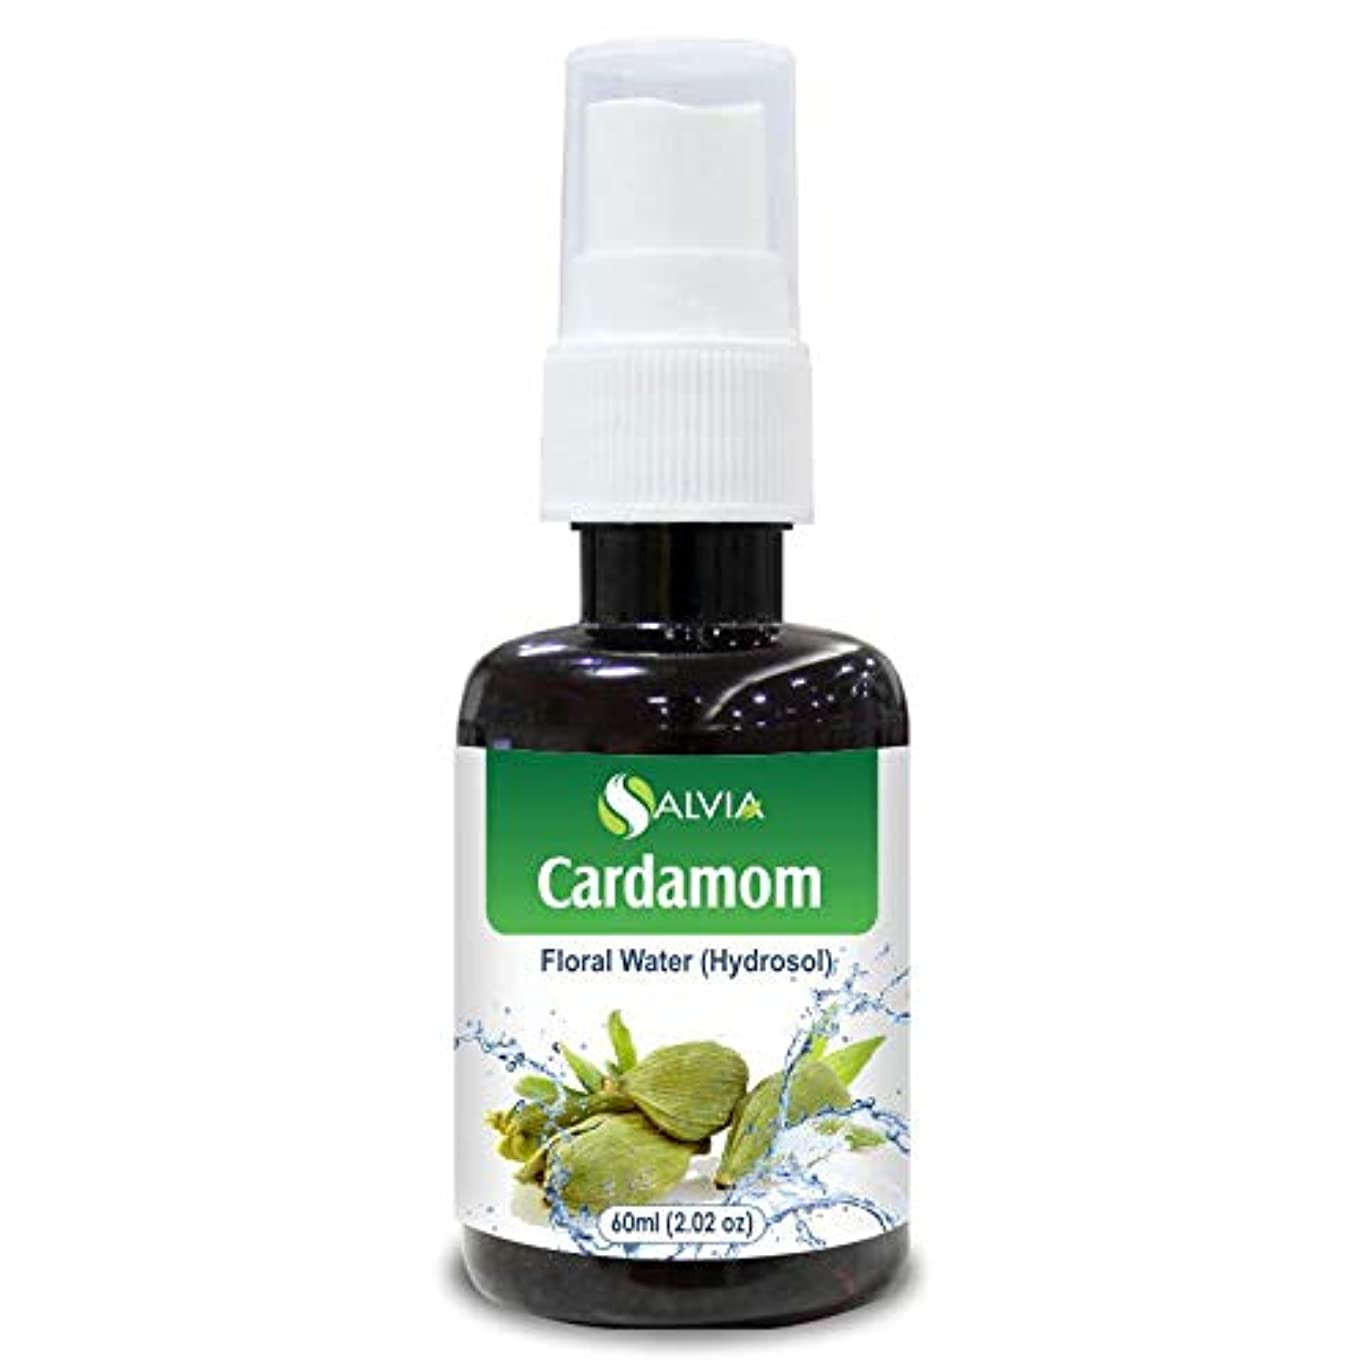 クレア間に合わせ麻痺させるCardamom Floral Water Floral Water 60ml (Hydrosol) 100% Pure And Natural